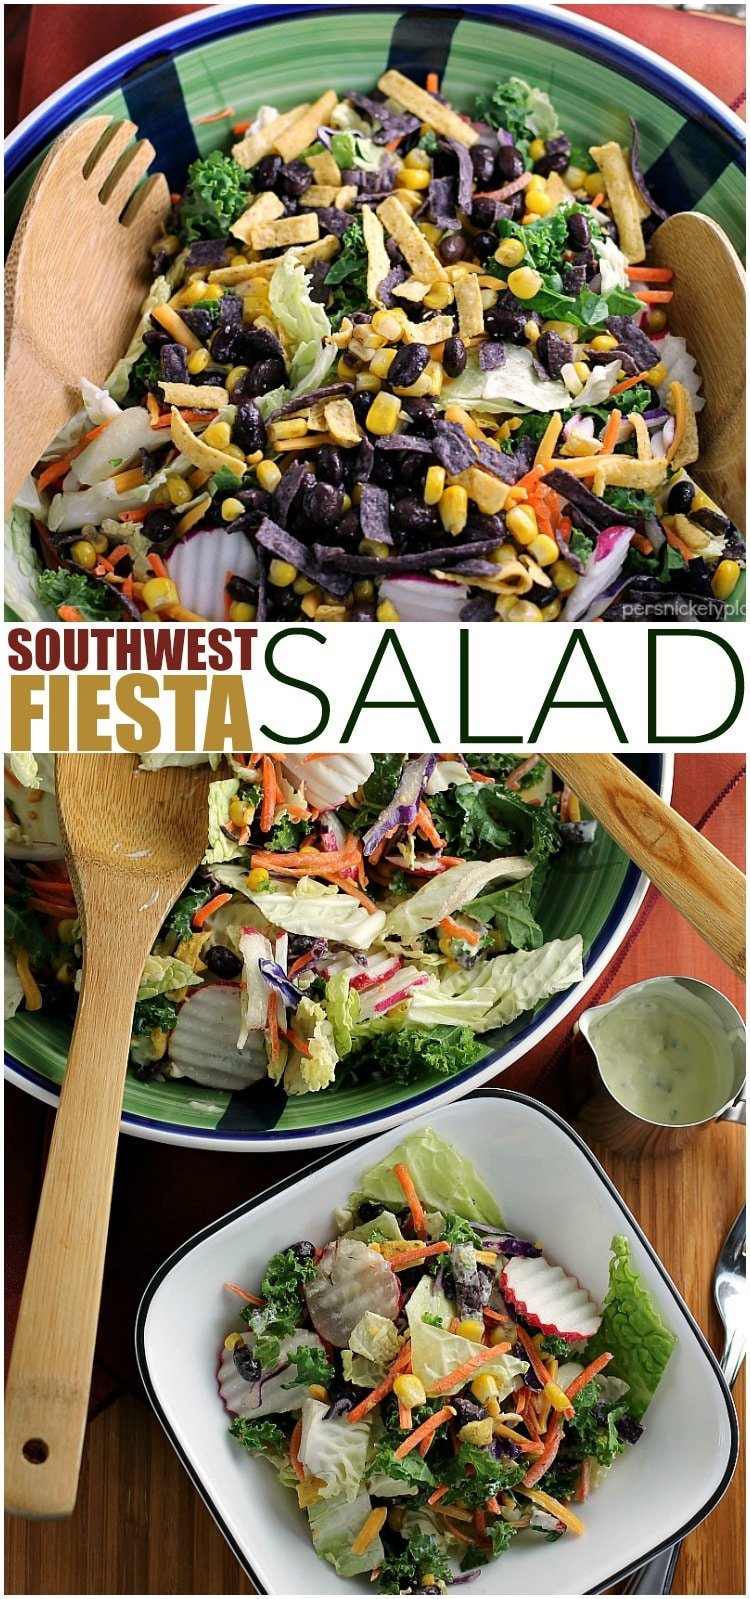 Southwest Fiesta Salad with a quick homemade spicy jalapeno dressing is a fast and healthy meal for any day of the week.   Persnickety Plates AD